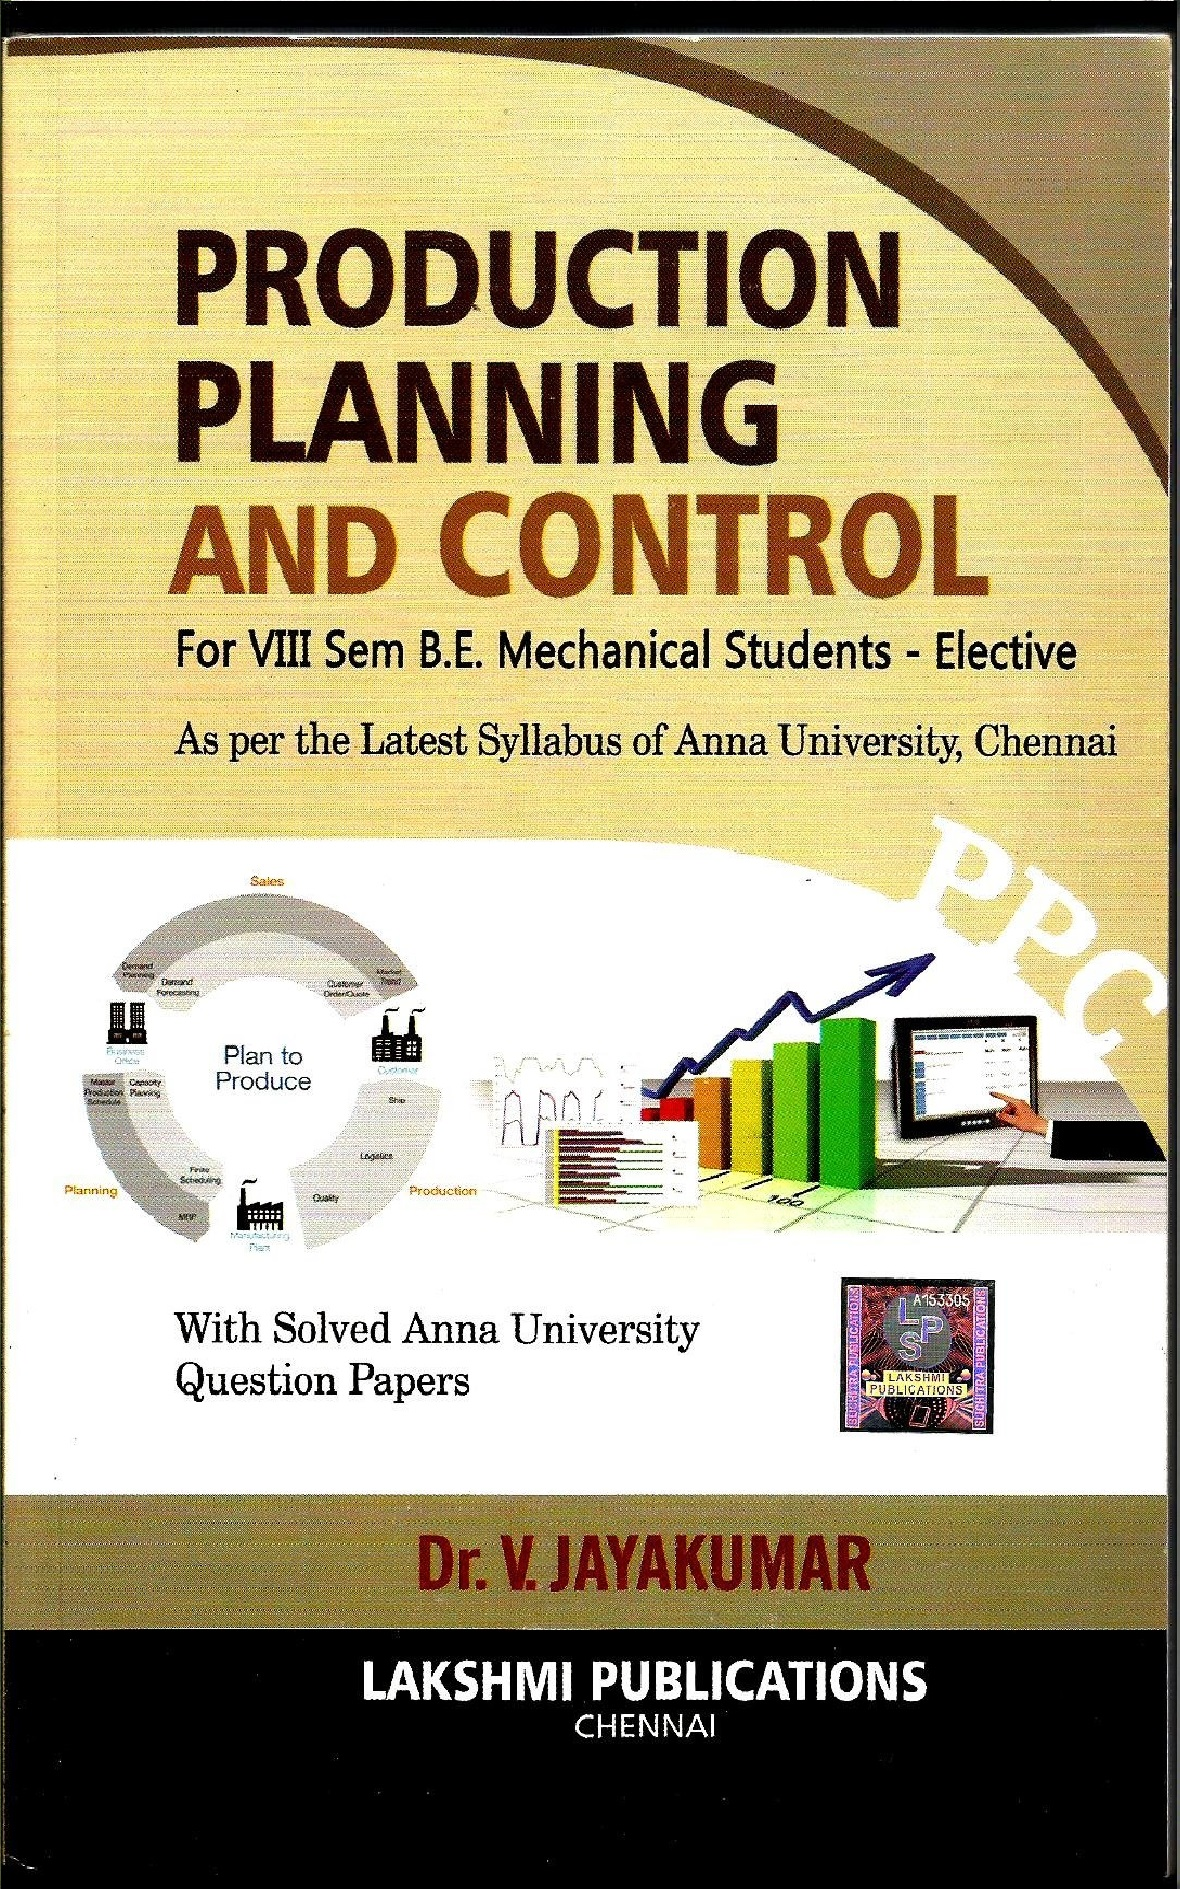 Production Planning and Control By Dr. V. Jayakumar